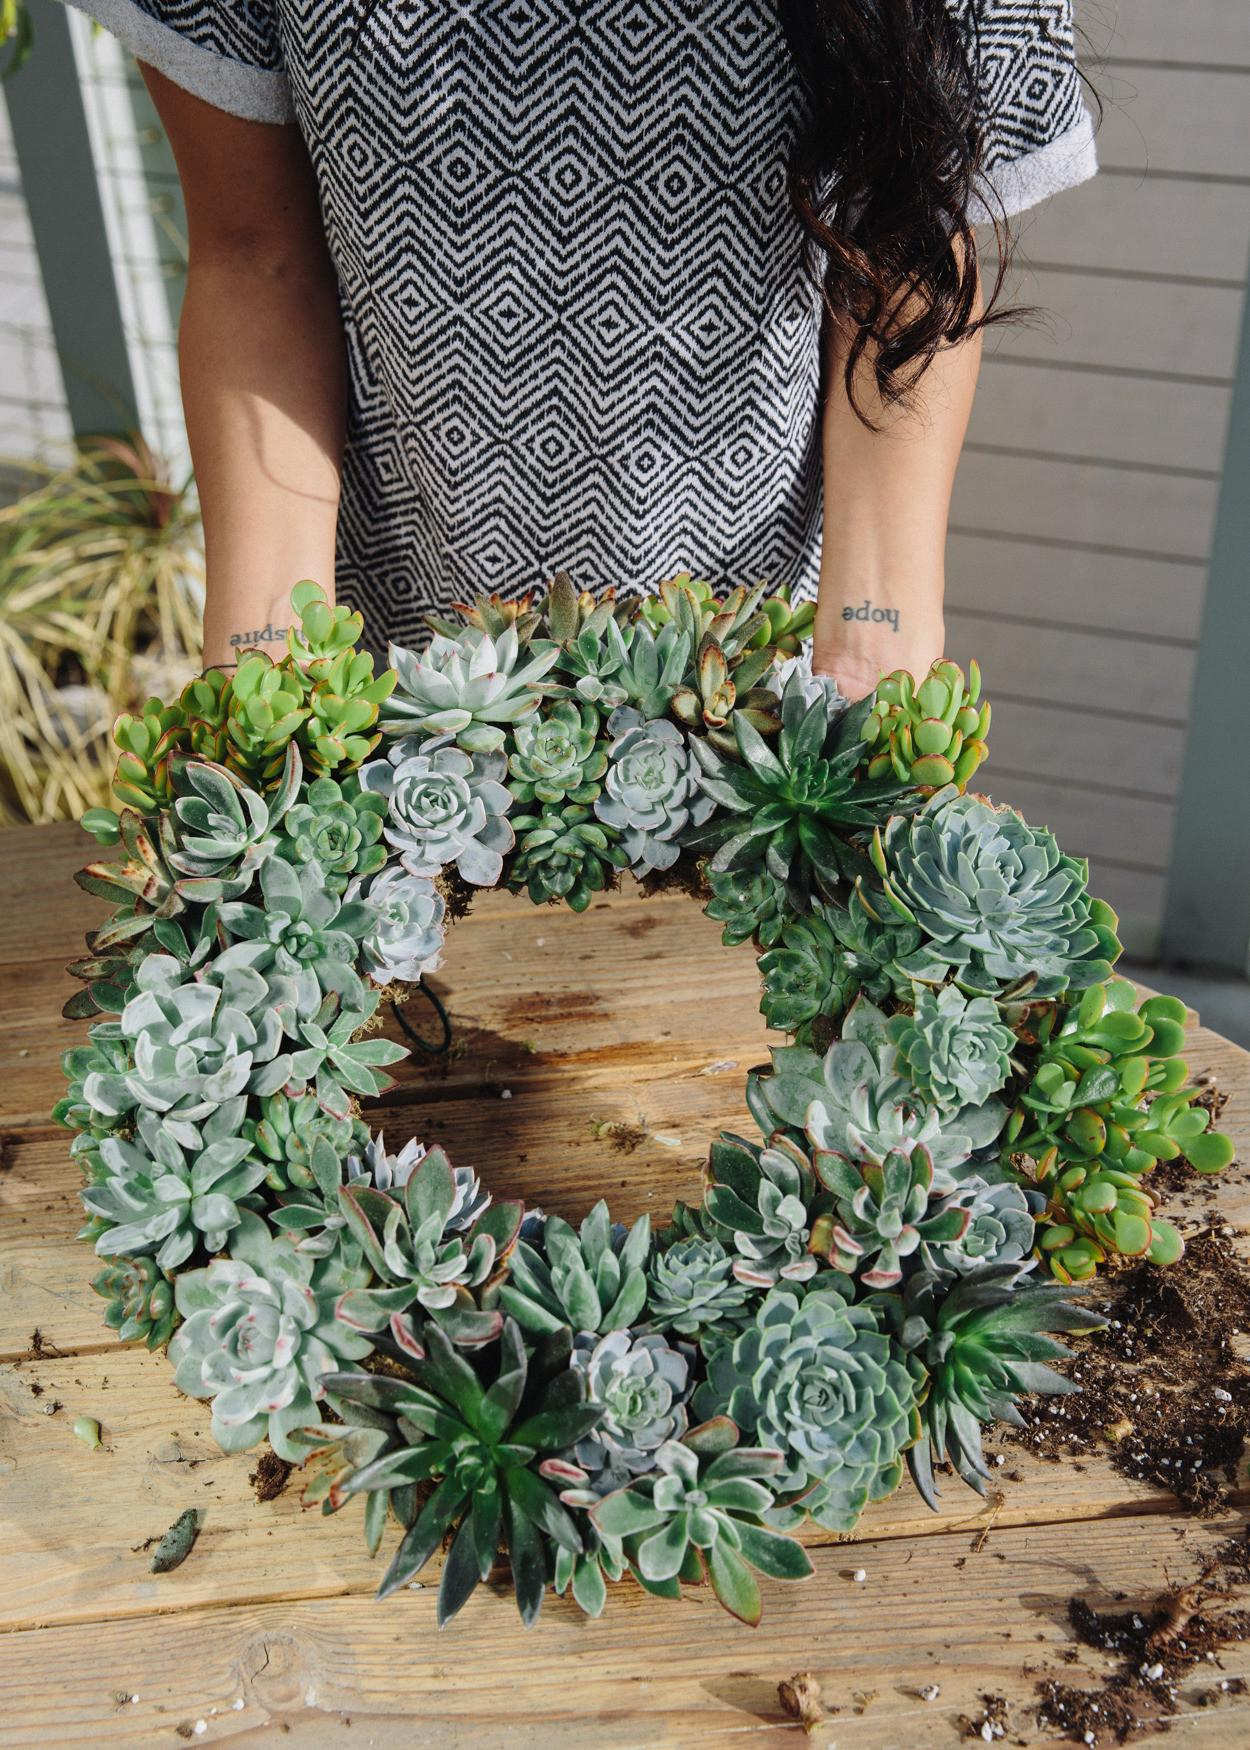 Uncovet Blog Presents Diy Succulent Wreaths